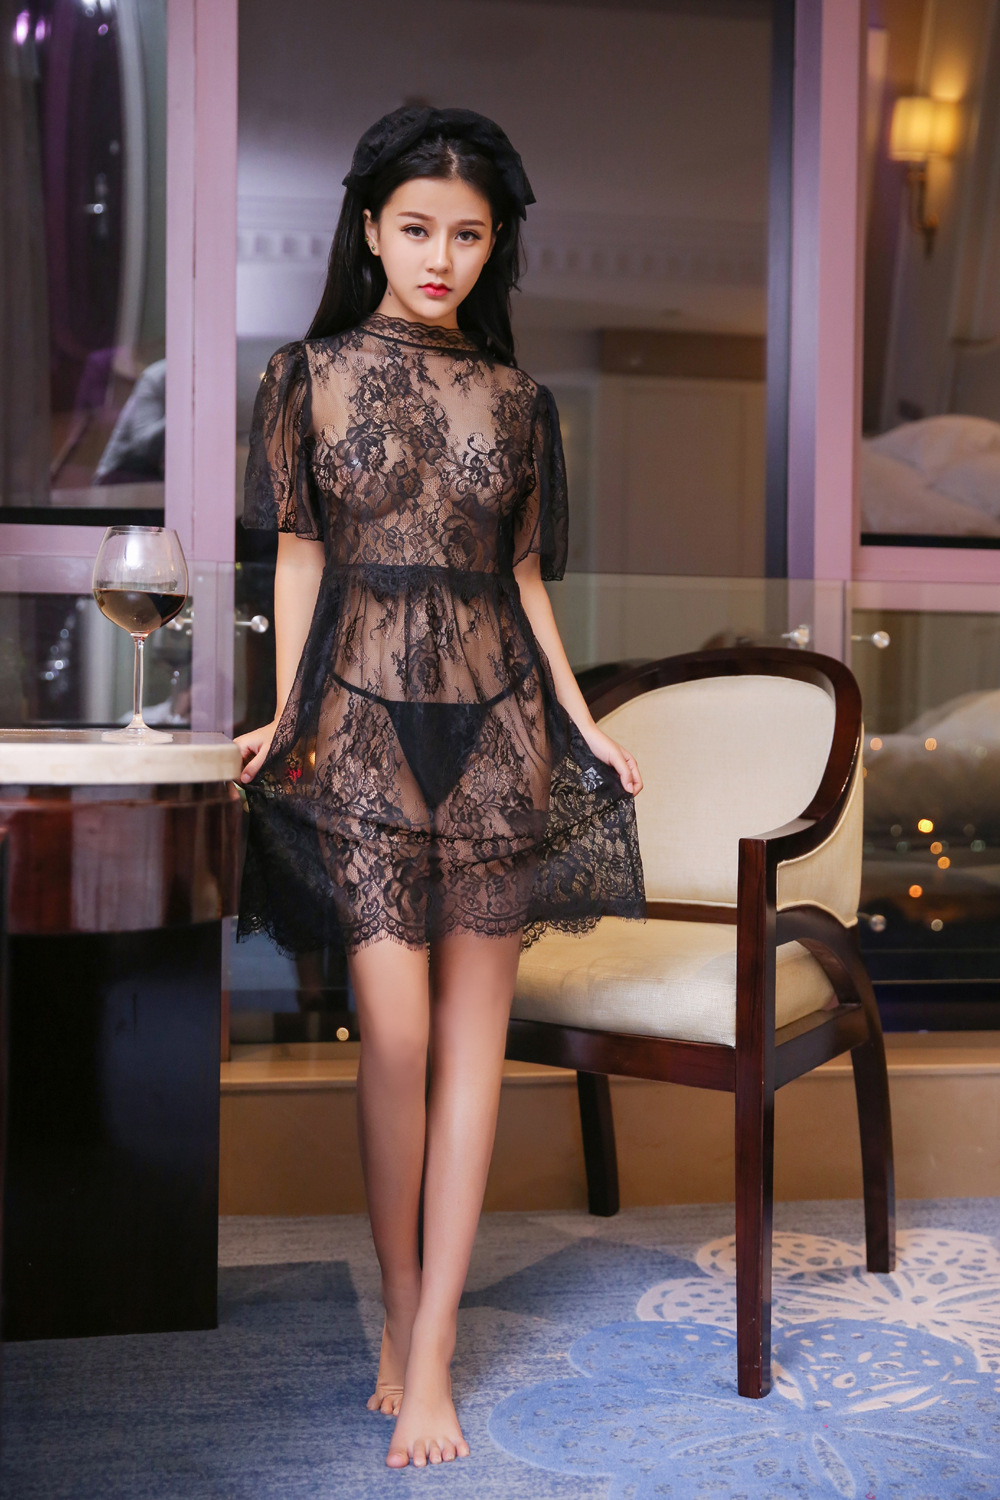 Sexy Lingerie Hot Women Lingerie Sexy Hot Erotic Underwear Black Lace Erotic Dress Cute Girl Intimates Nightdress Exotic Apparel